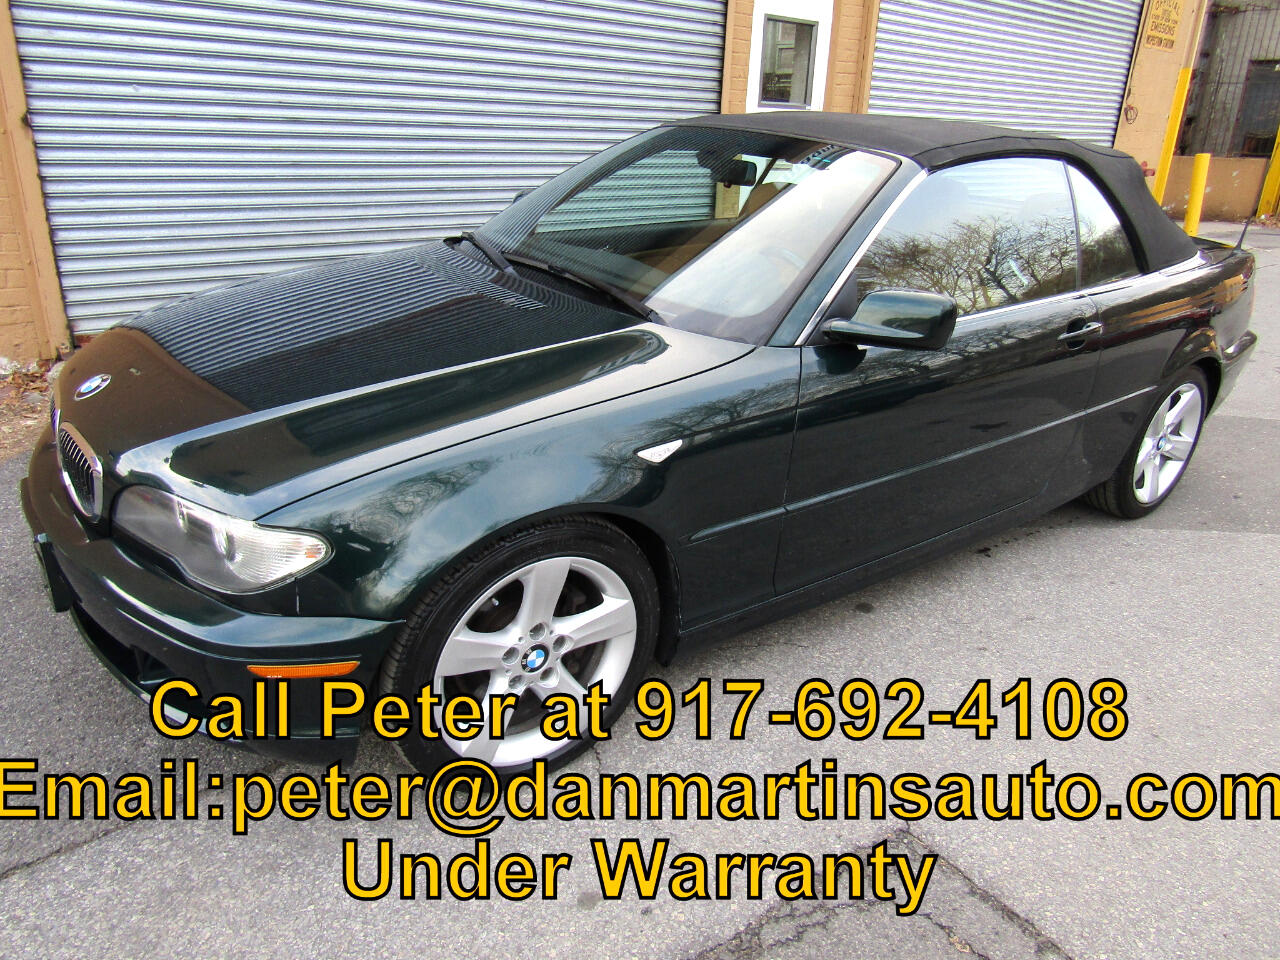 BMW 3 Series 325Ci 2dr Convertible 2005